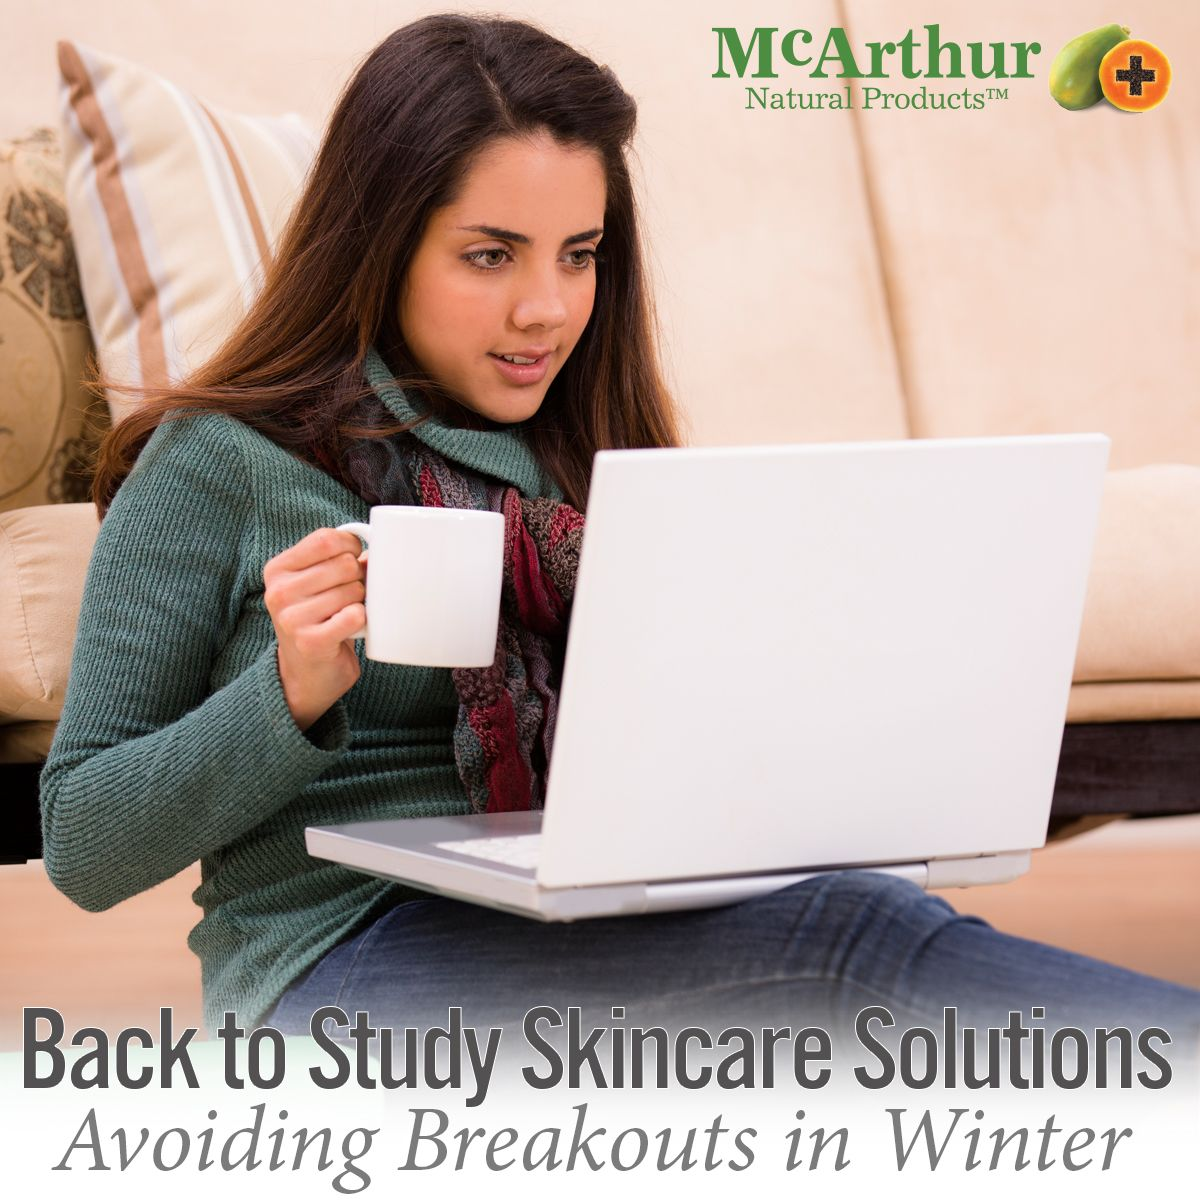 Back to Study Skincare Solutions  Avoiding breakouts in winter with McArthur Natural Skincare skincare range.  It's time to get back into the swing of study, but feeling self-conscious about acne-prone skin can take all the fun out of reuniting with or making new friends. As a teenager or young adolescent battling with your skin, particularly in winter, we have some suggestions to assist you in today's eNewsletter.  View it online here: http://mcarthurskincare.com/news/july-21-2016/